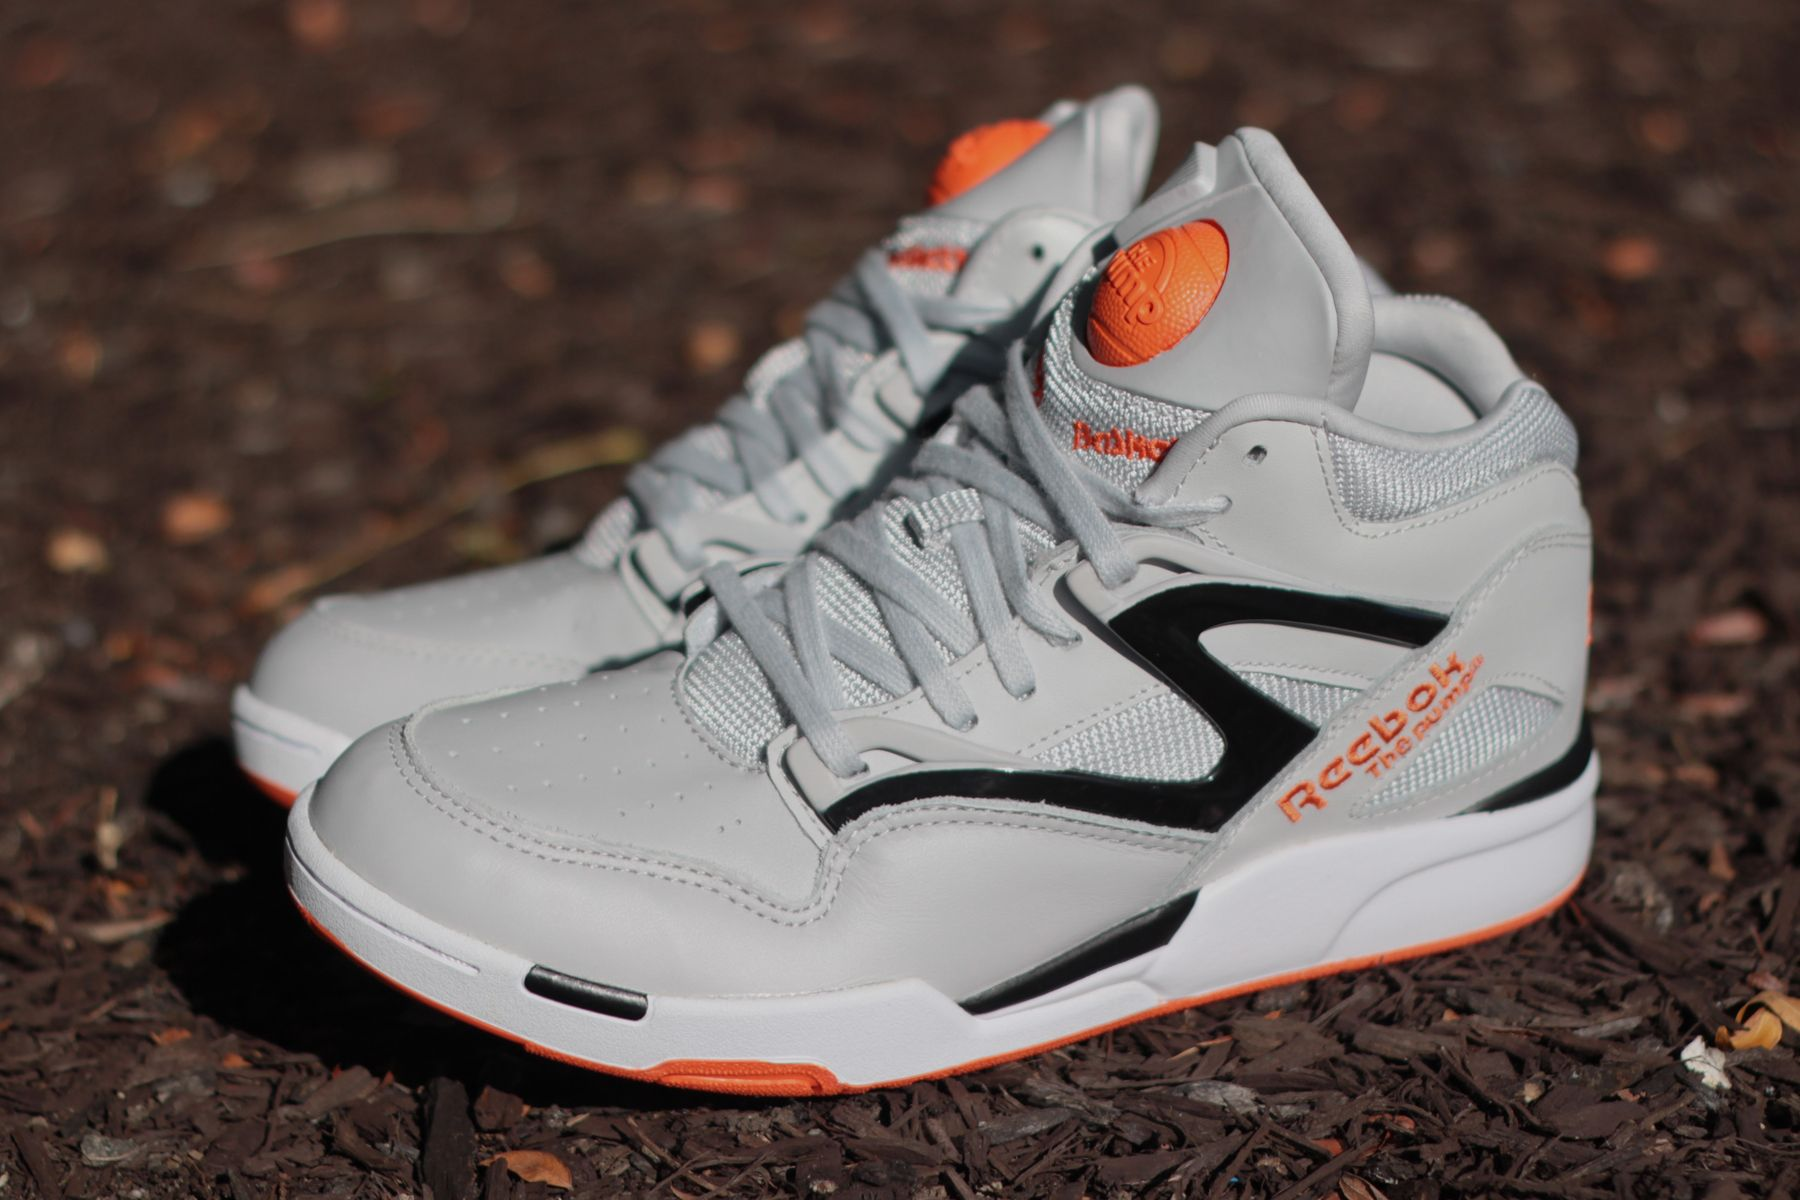 fabf4764605 The Reebok Pump Omni Lite gets a Steel and Orange Swag color up ...